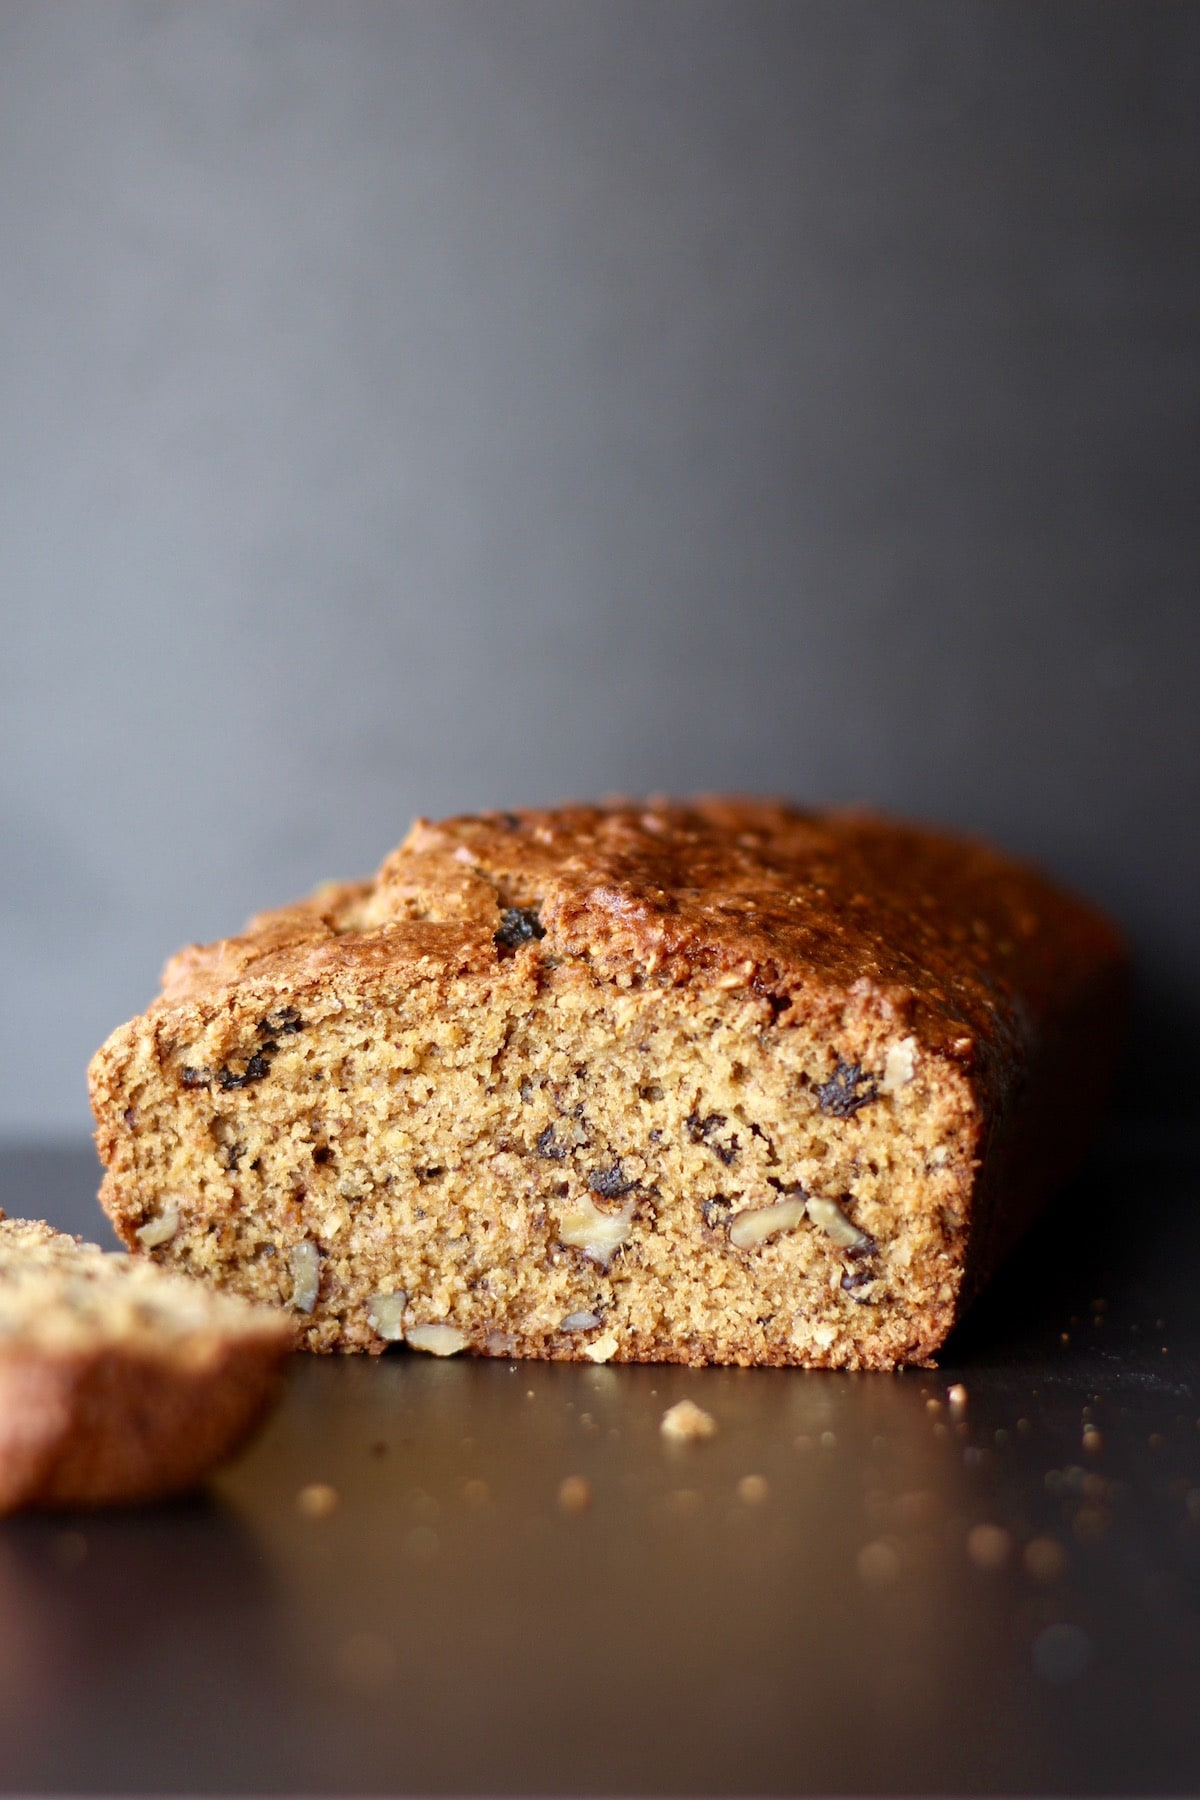 walnuts and raisins peeking out of a sliced loaf of quick bread